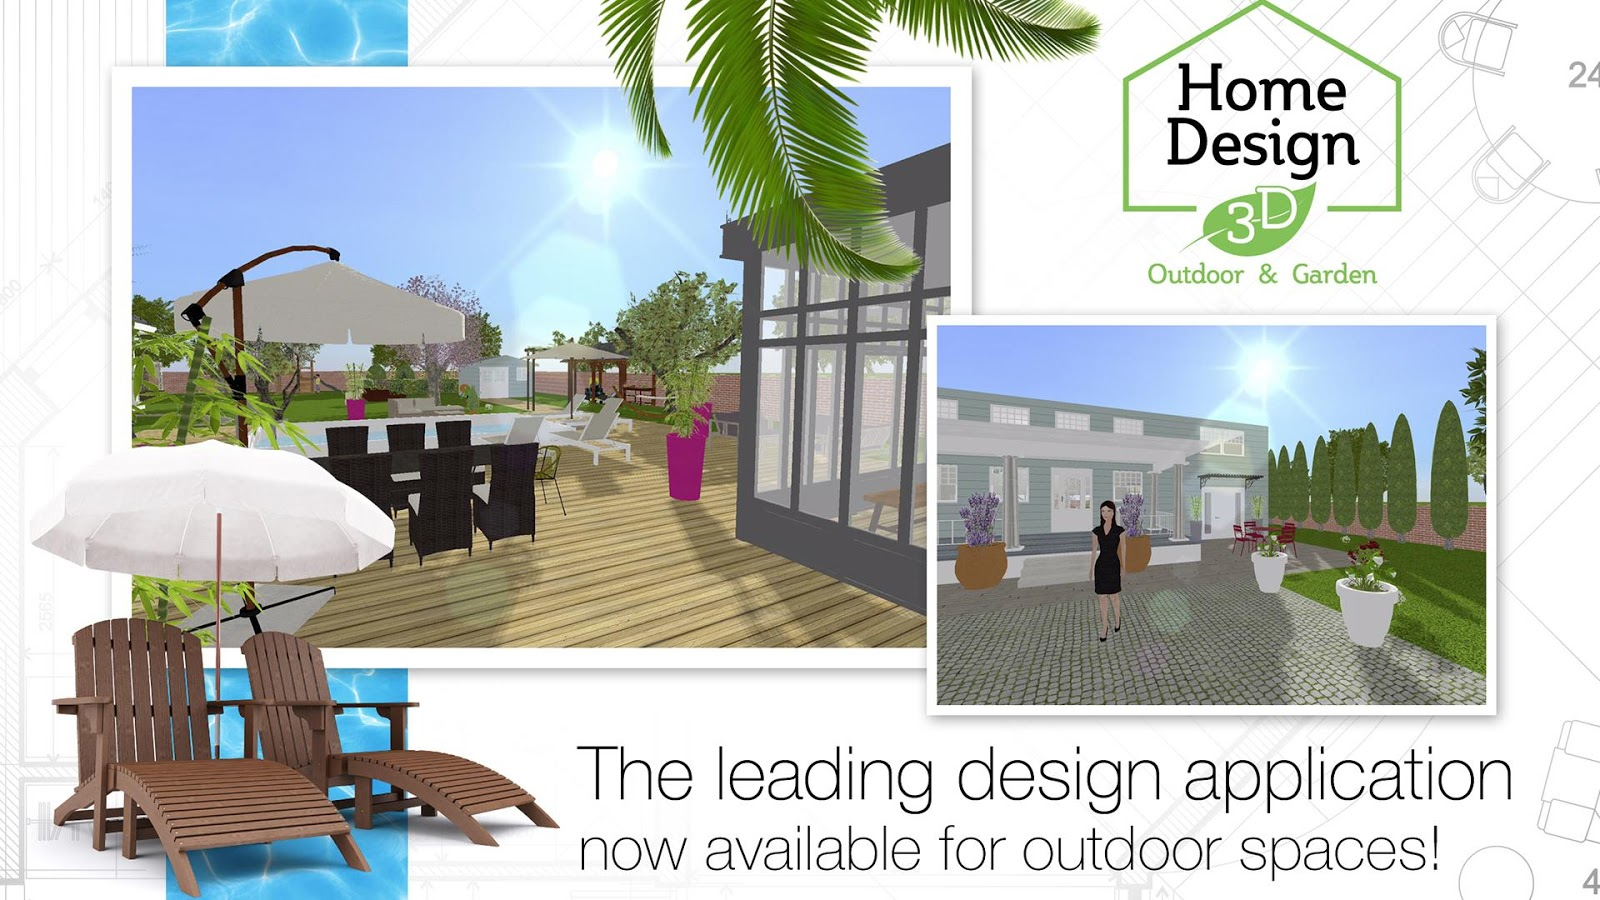 home design 3d outdoor garden android apps on google play home design 3d outdoor garden android apps on google play